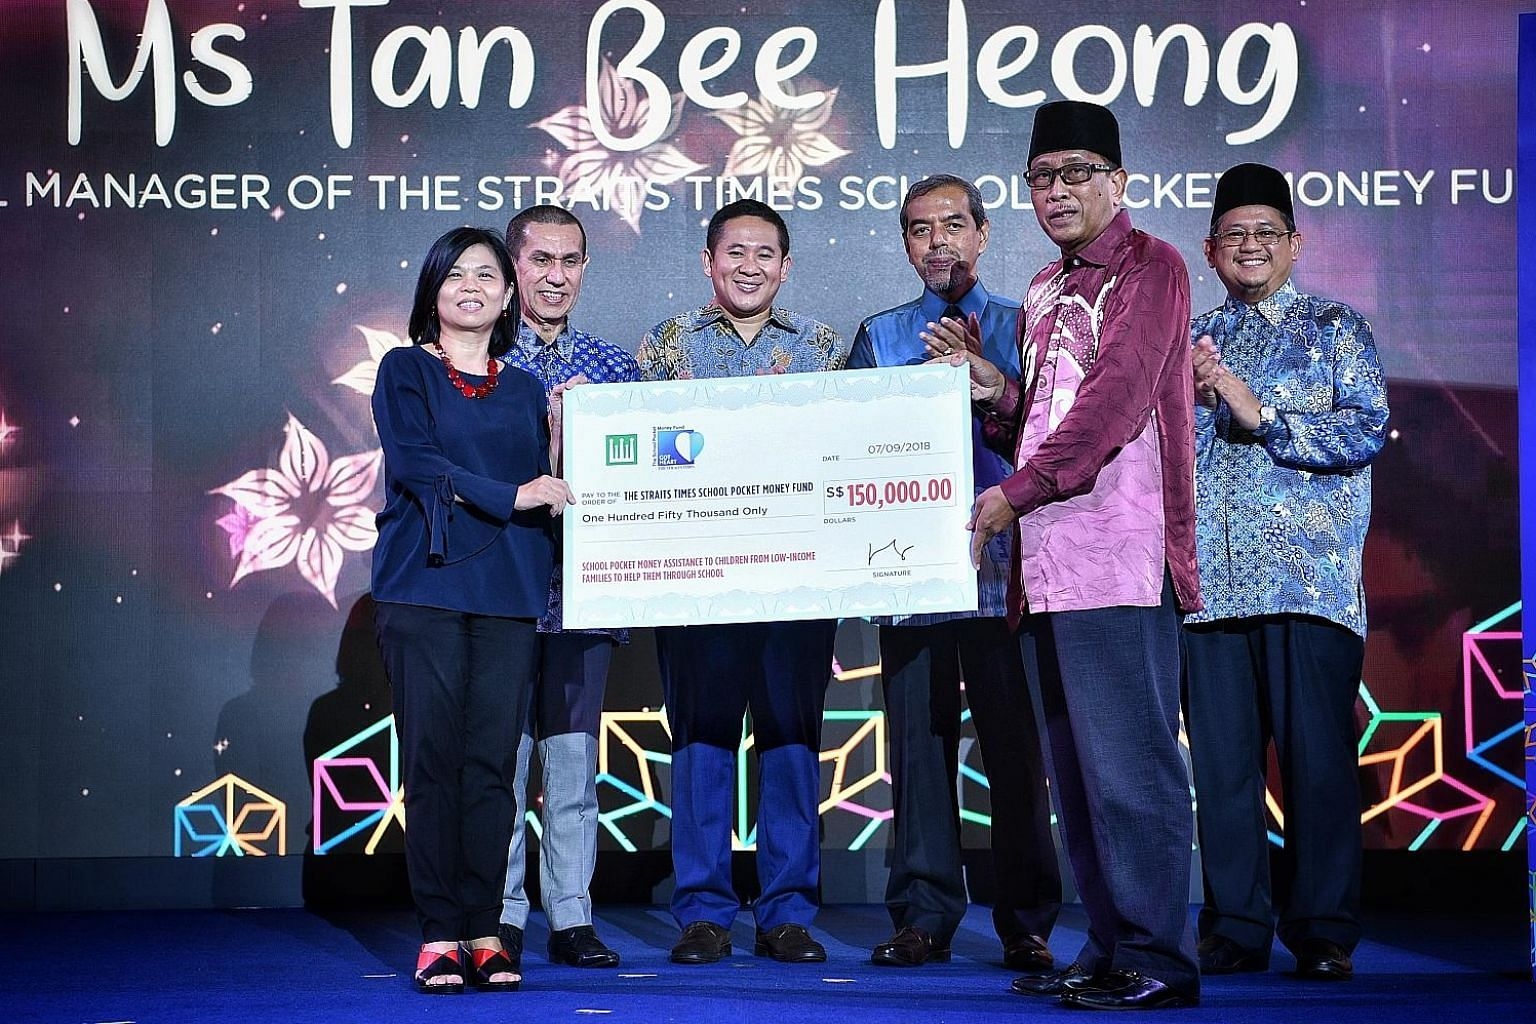 From left: Ms Tan Bee Heong, general manager of The Straits Times School Pocket Money Fund; Muis president Mohammad Alami Musa; Senior Parliamentary Secretary for Home Affairs and Health Amrin Amin; Muis chief executive Abdul Razak Hassan Maricar; Mr